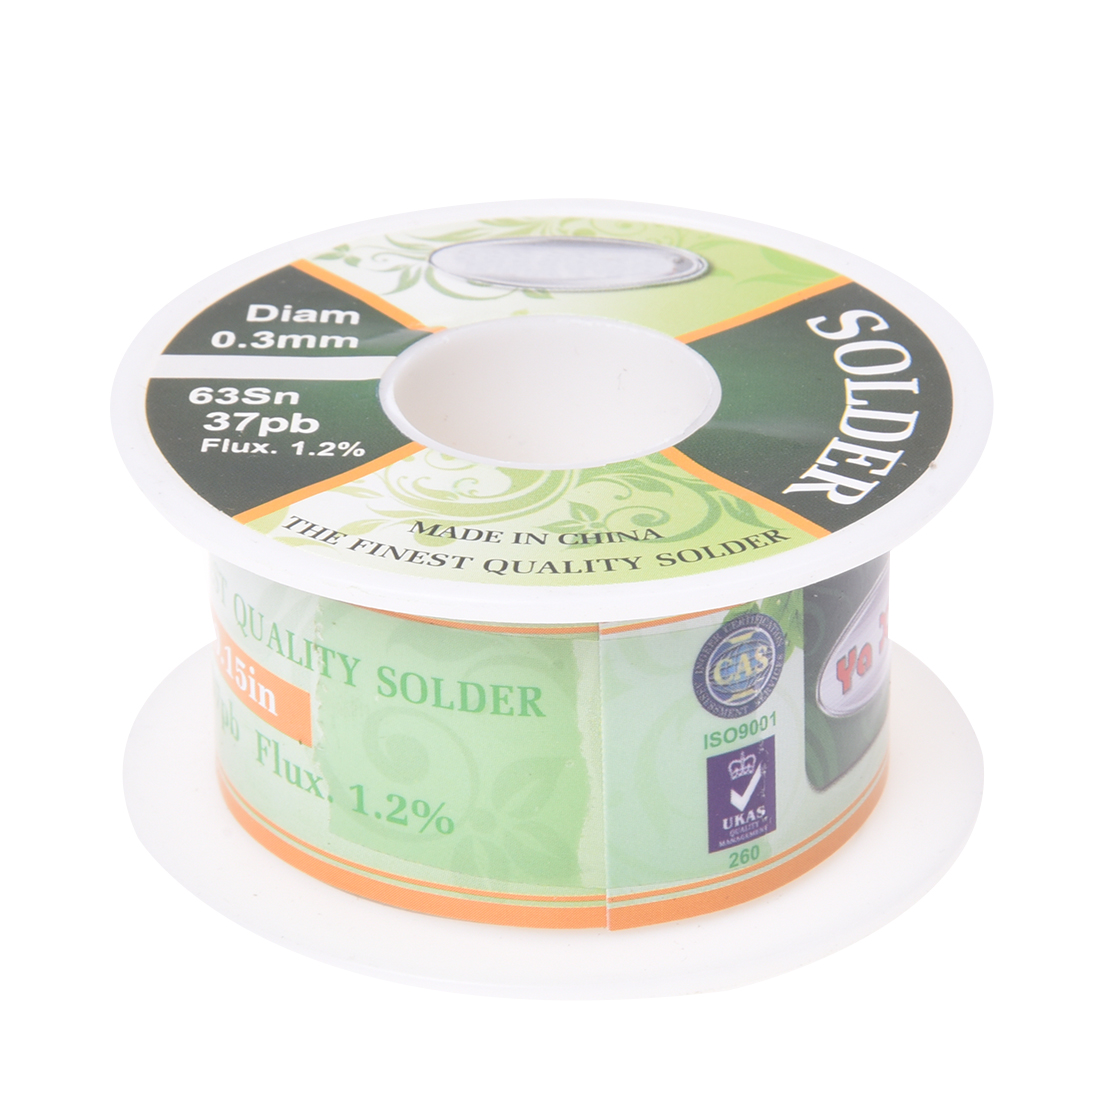 The Finest Quality Solder 0.3mm Dia,1.2% Flux,63Sn/37Pb, Wire Reel Drop Shipping